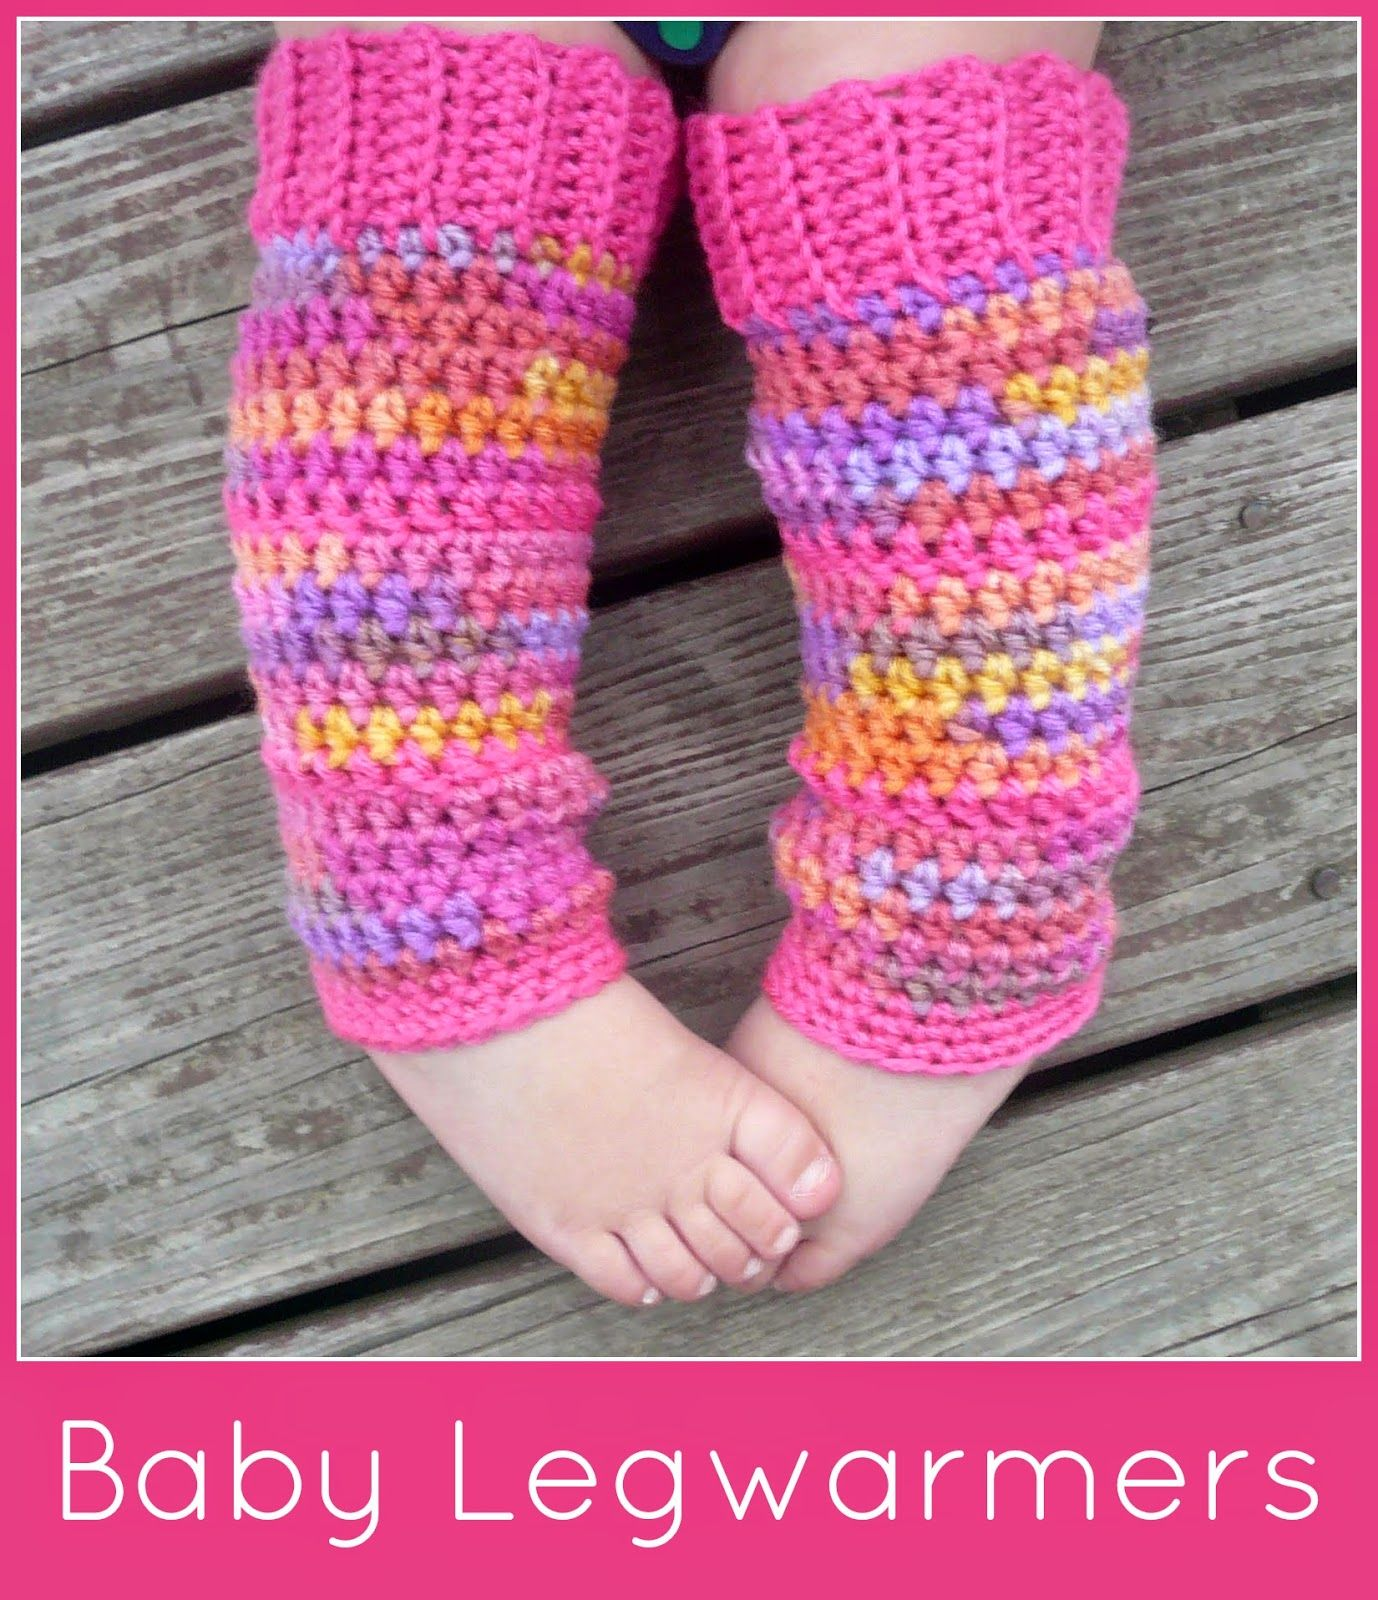 Danyel pink designs free patterns baby legwarmers and many others crochet leg warmers for children are practical and they just look good today ive collected 10 free crochet leg warmers patterns for babies kids bankloansurffo Choice Image